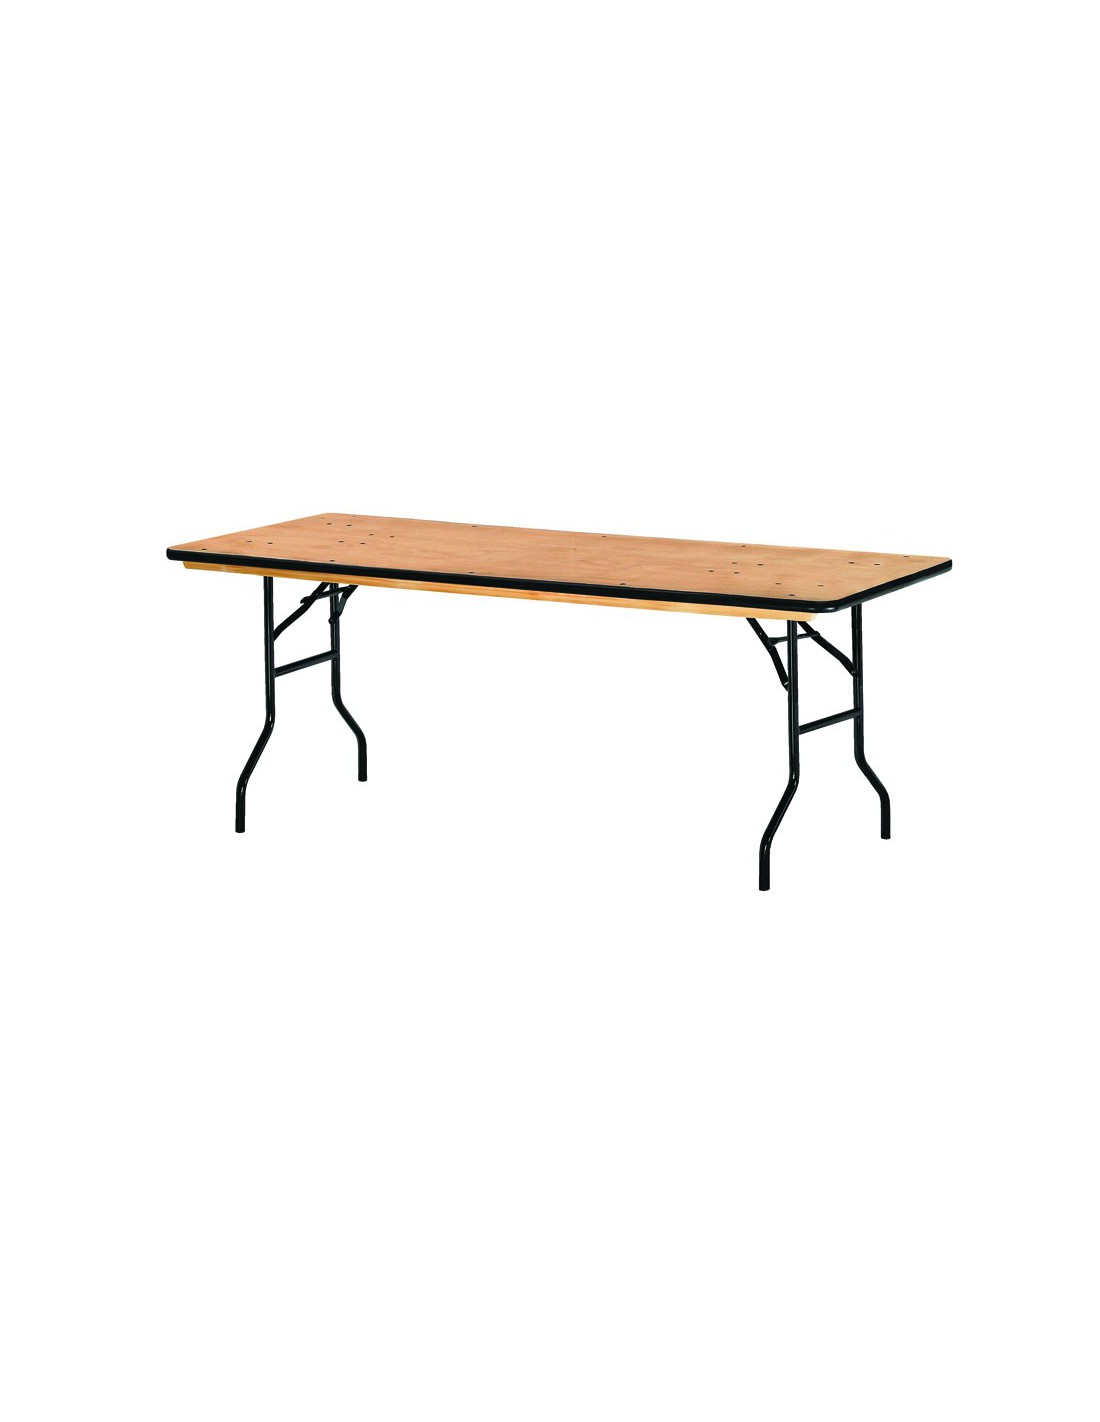 Table pliante bois exotique rectangulaire tarragone - La table exotique ...